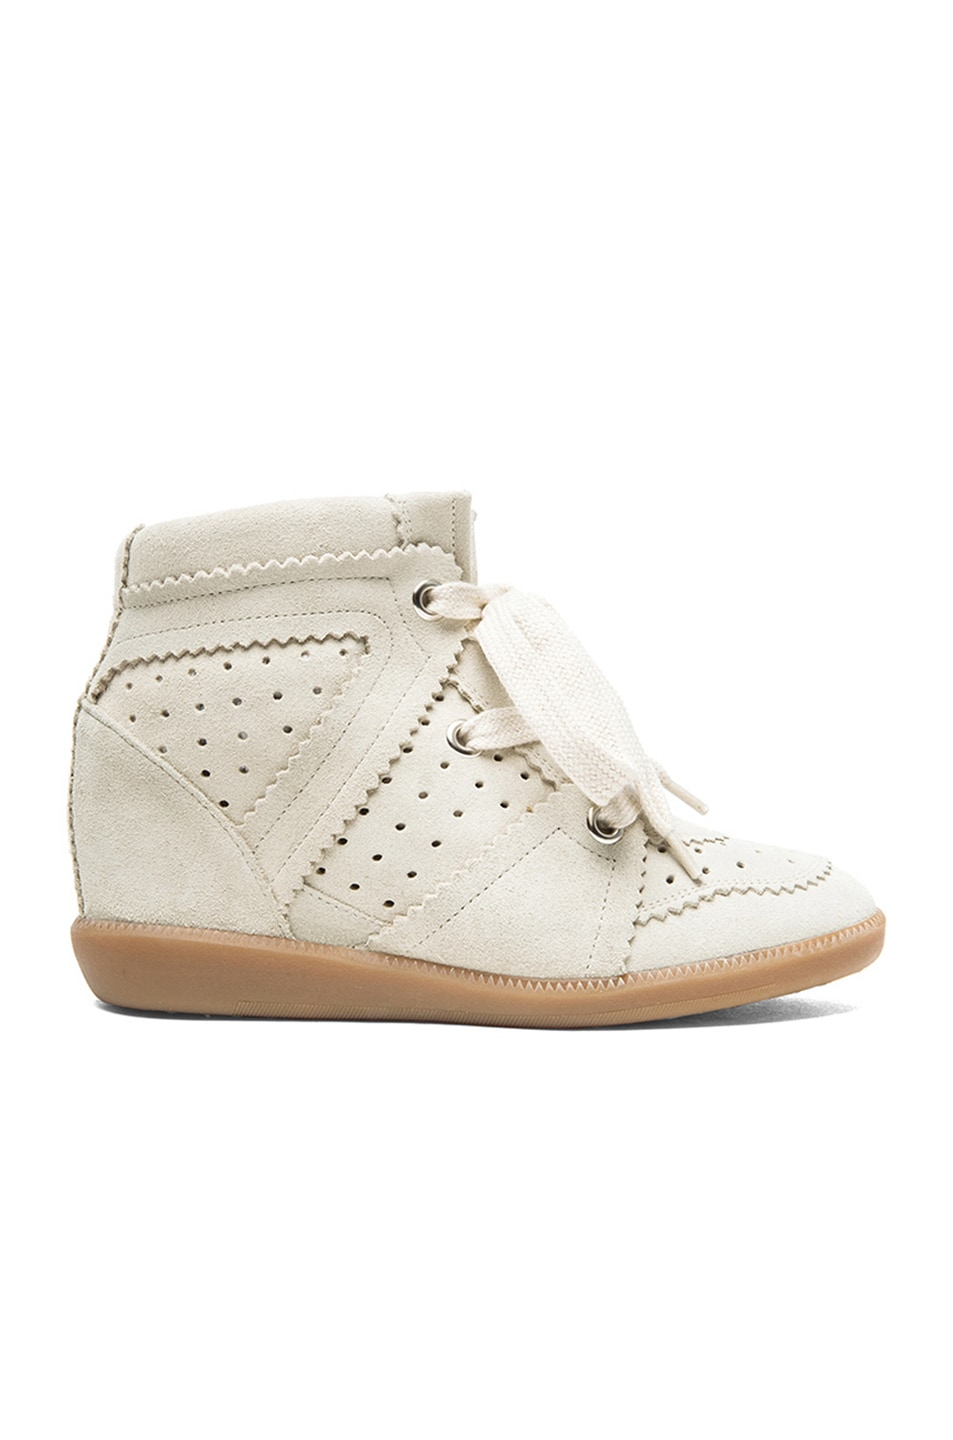 ac284646b3 Image 1 of Isabel Marant Bobby Calfskin Velvet Leather Sneakers in Chalk